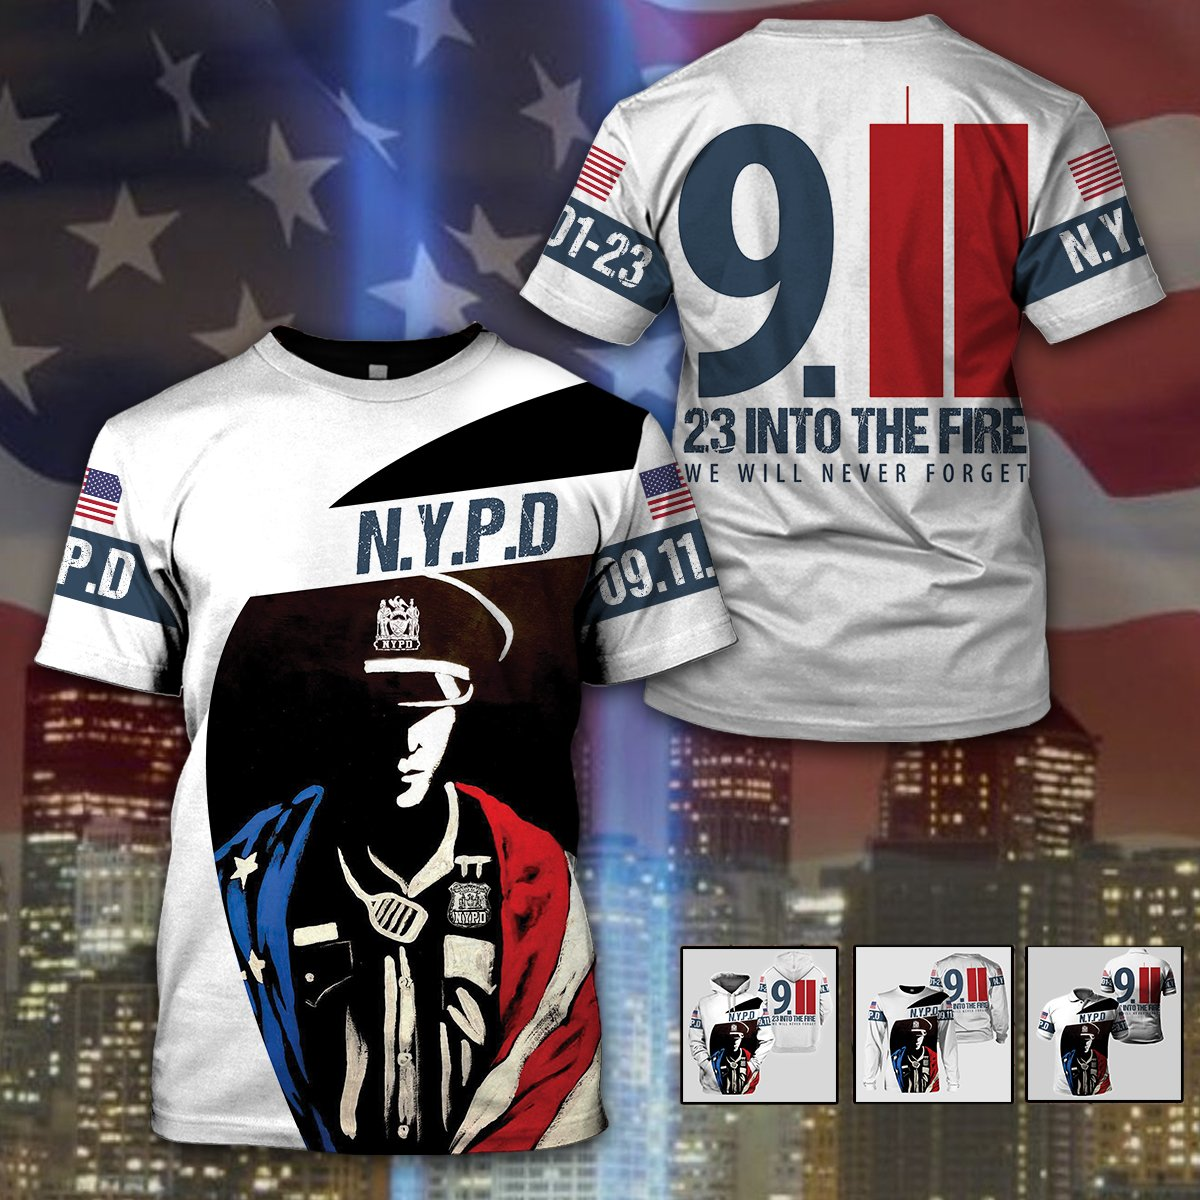 3D Law Enforcement Apparels- 23 into the fire - 4zOutfitters Merchandise